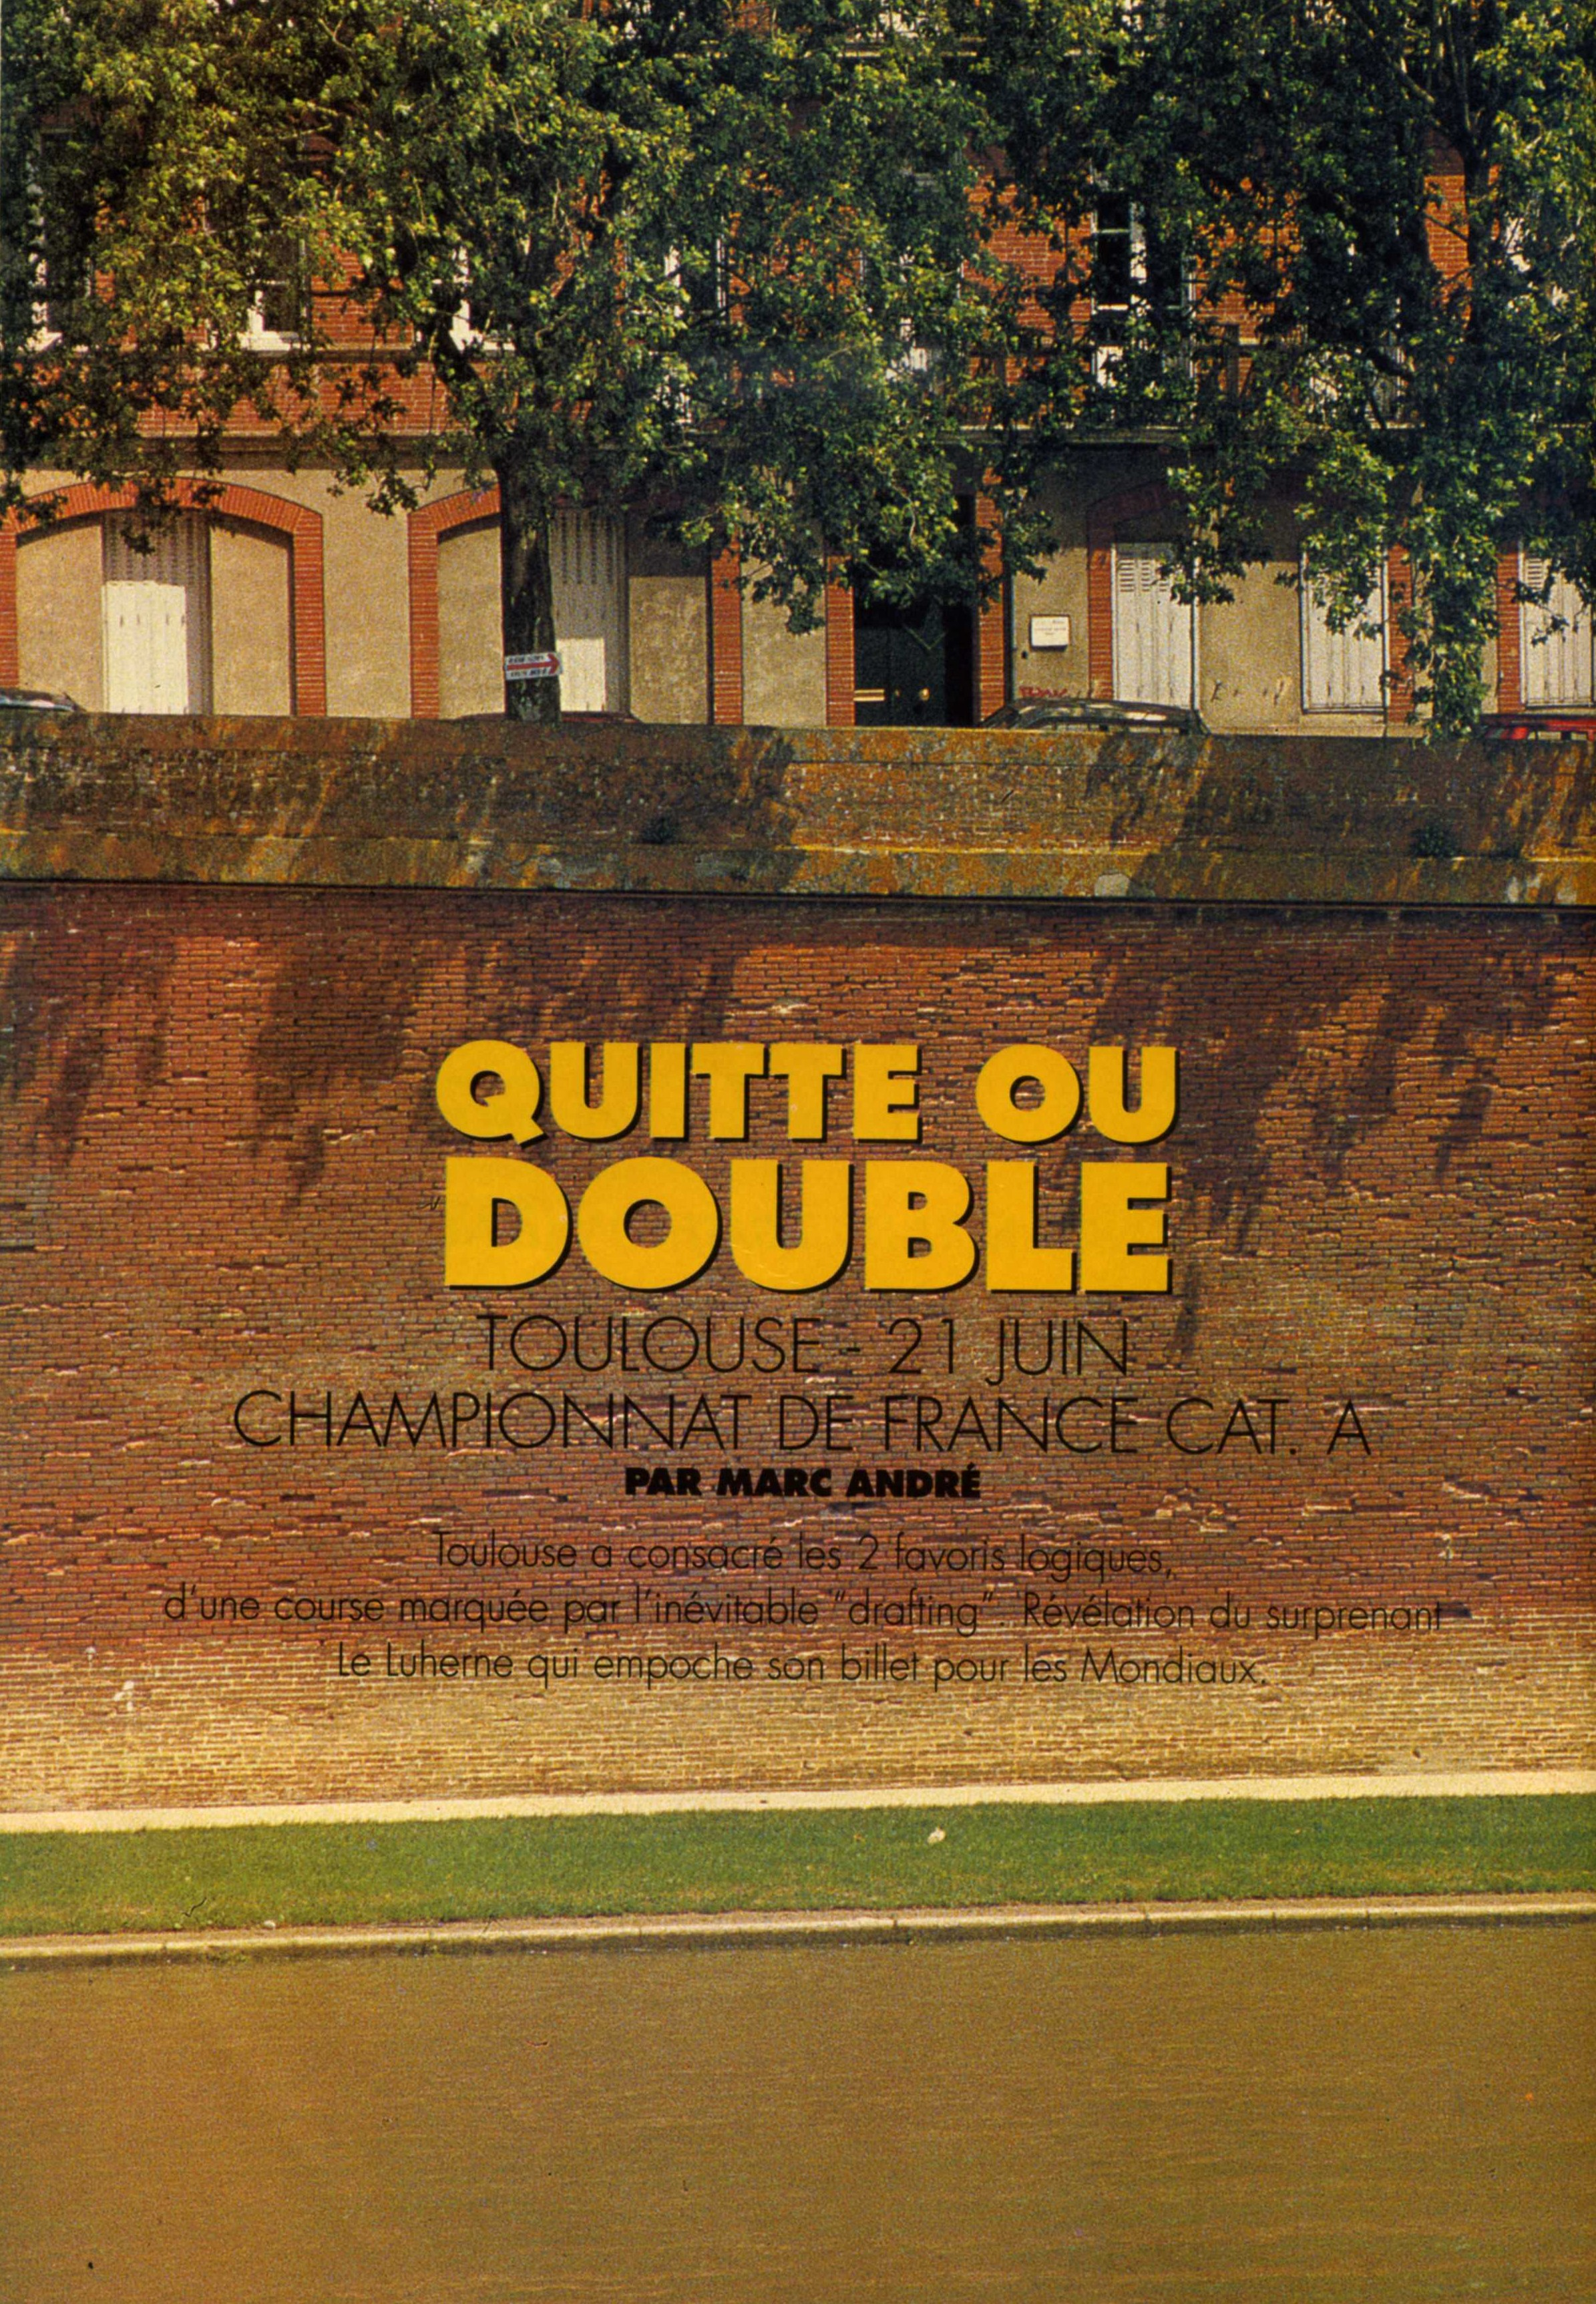 img[A]247_21-juin-1992_toulouse